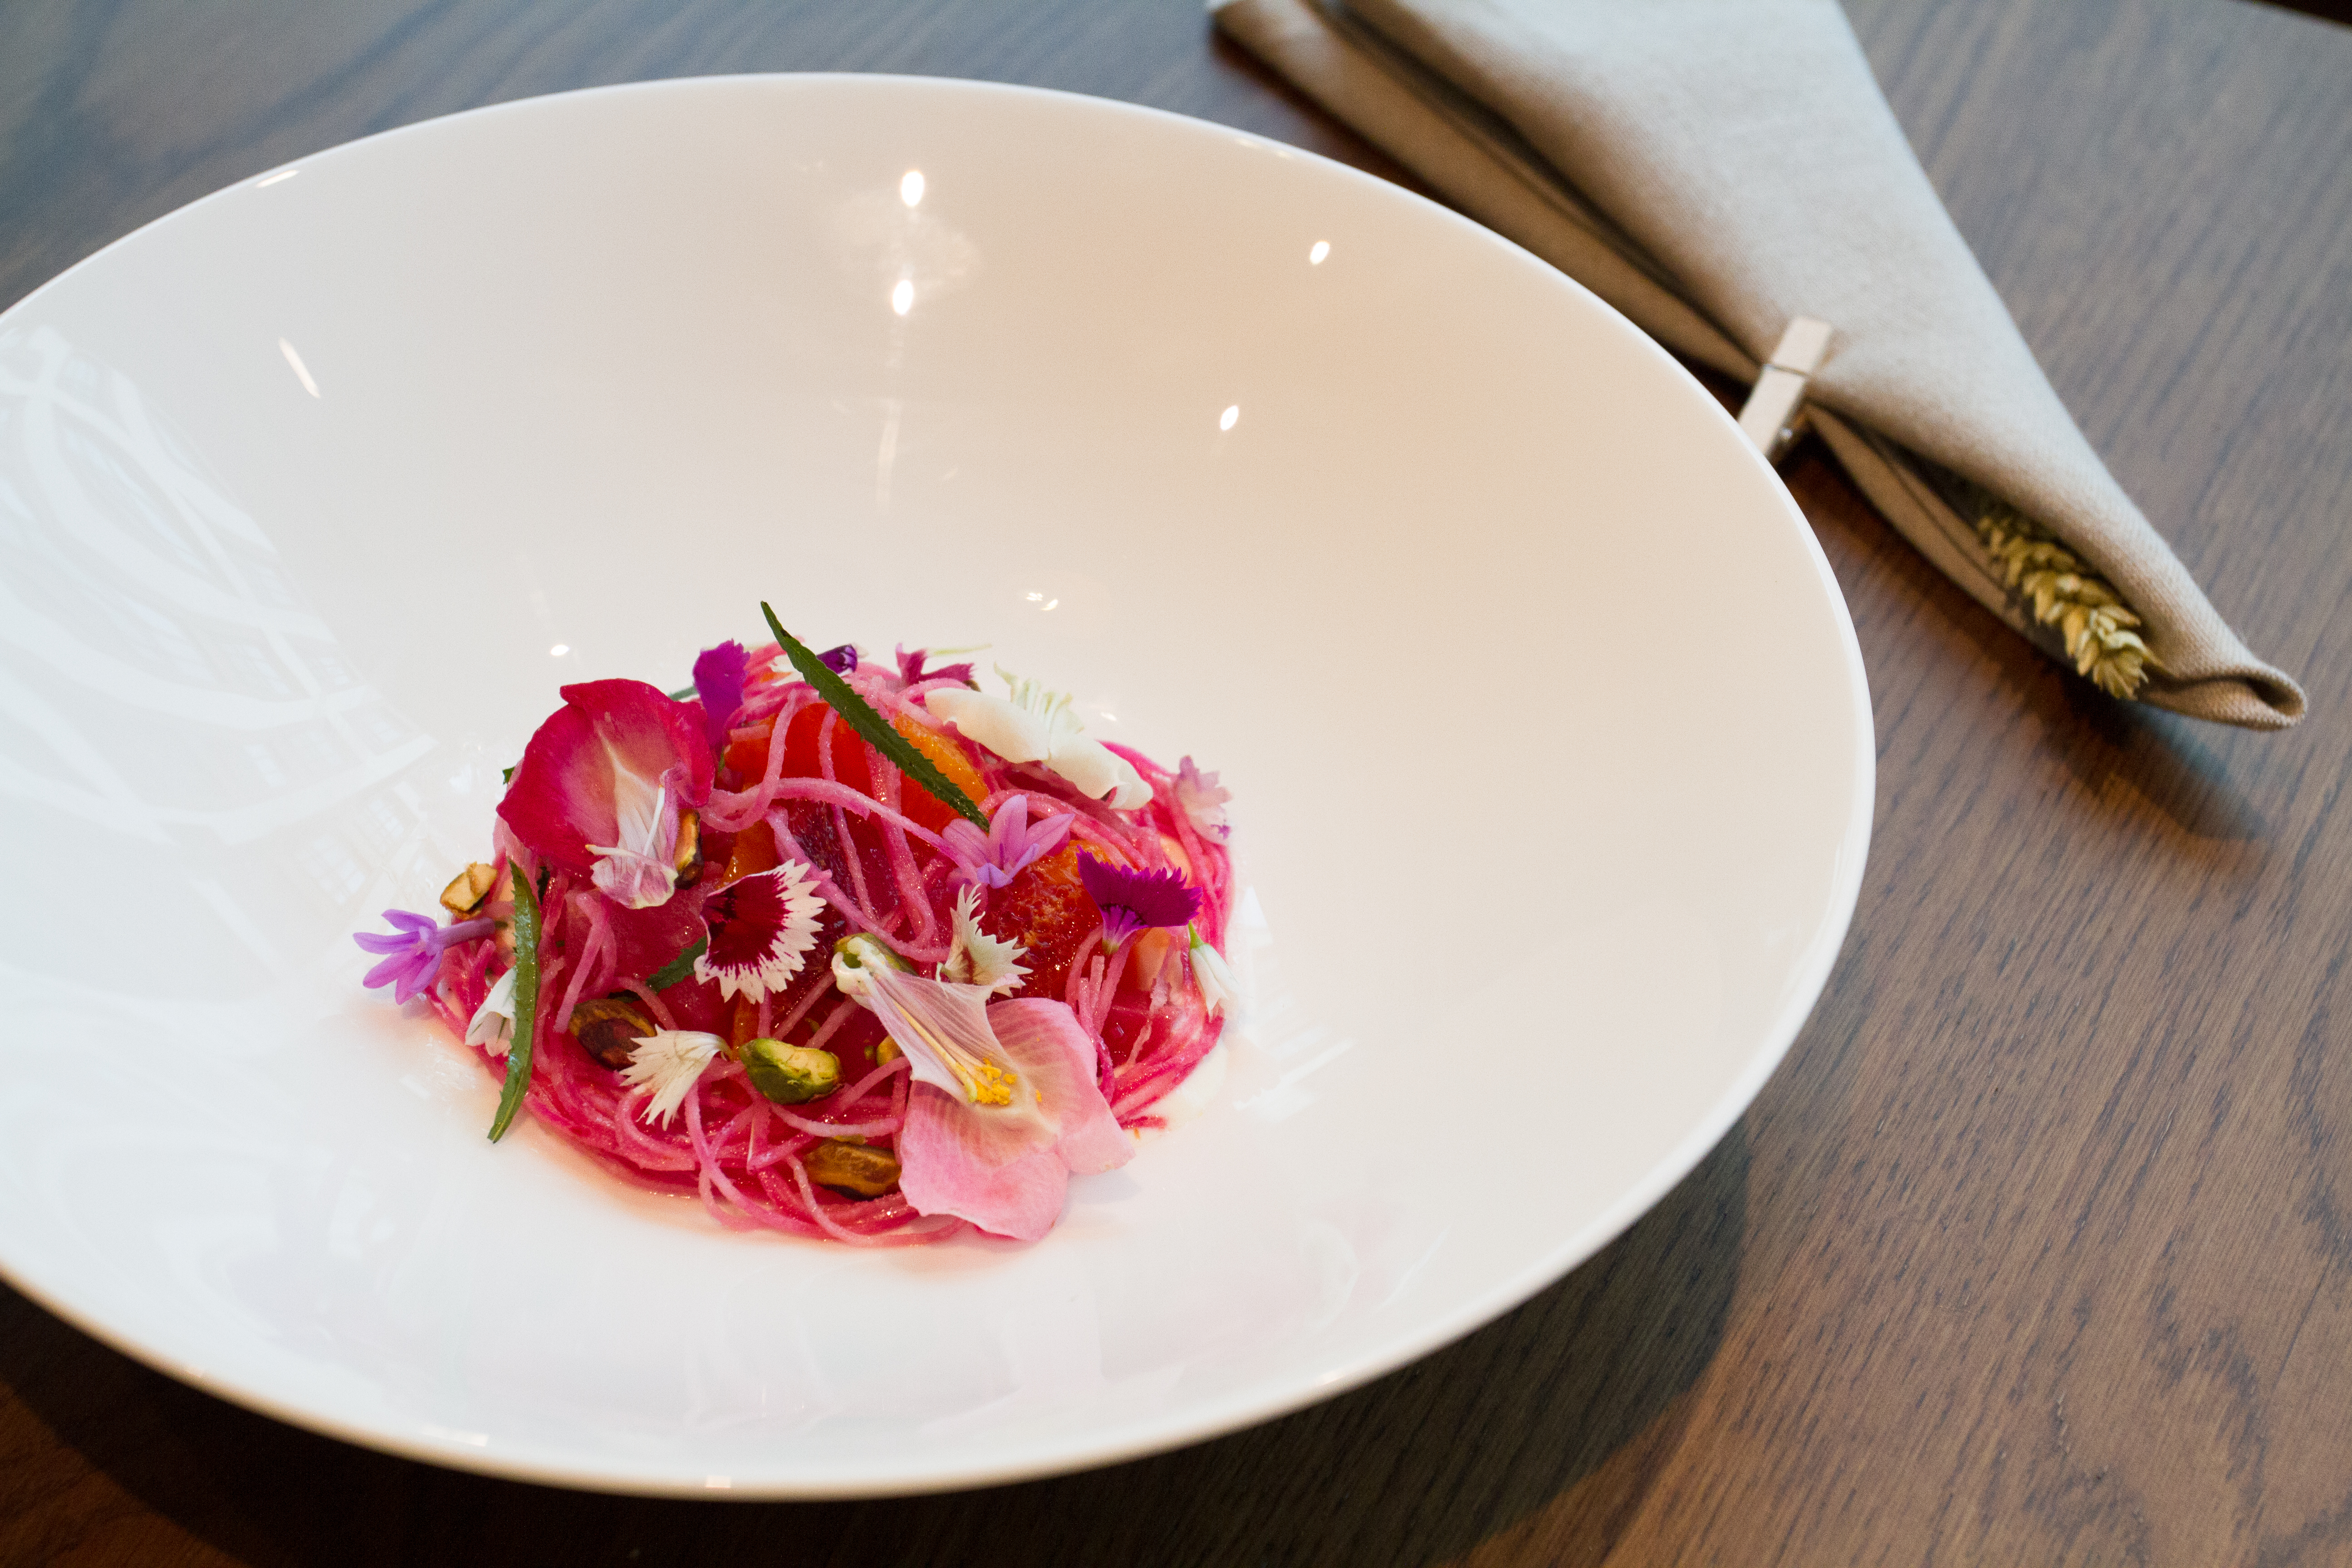 A dish at Michelin-starred restaurant Hide, which will launch the Hideaway pop up at Burlington Arcade on Piccadilly for Christmas 2018